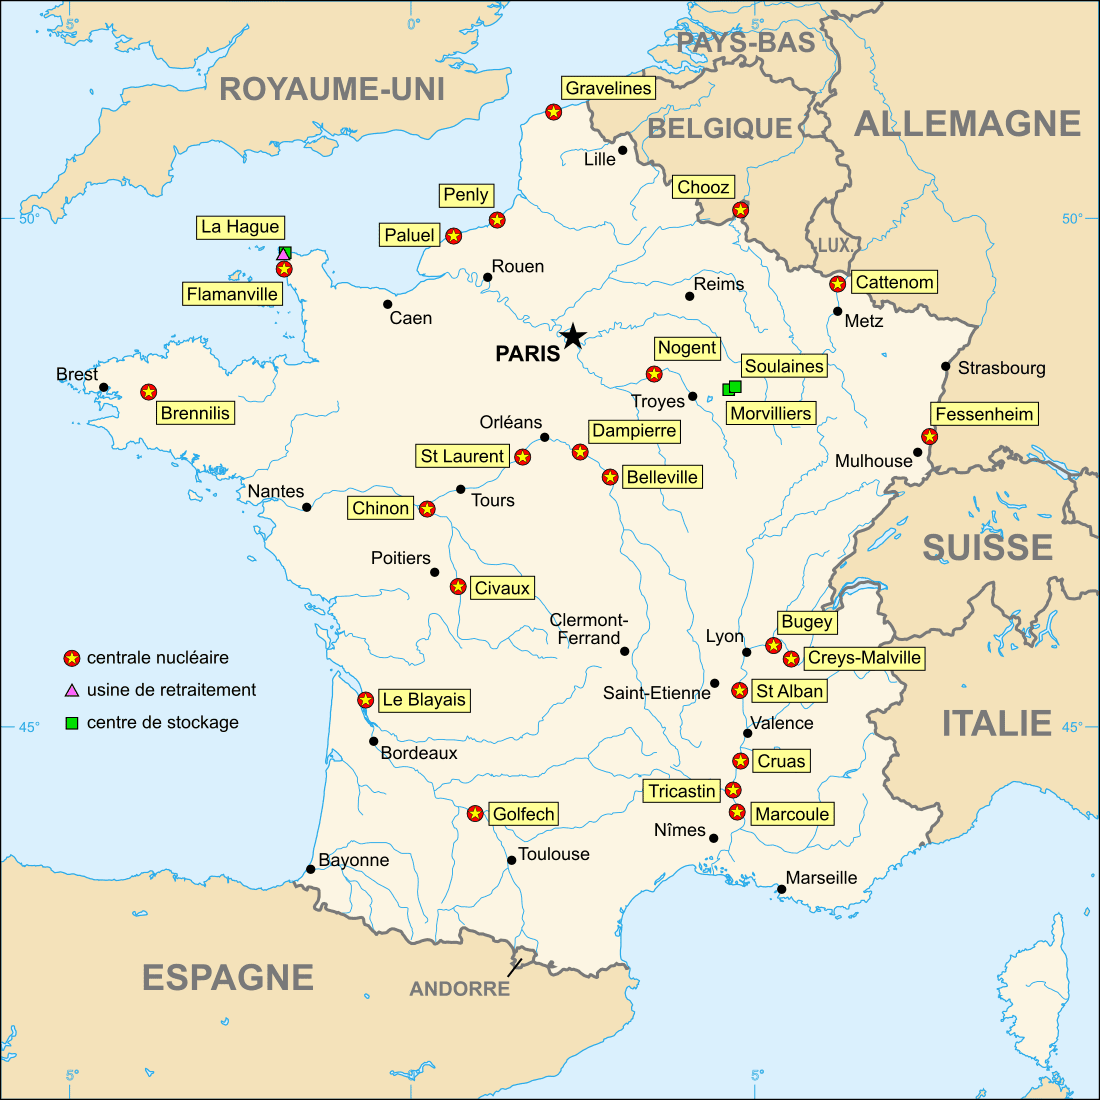 france s nuclear history dates back to the 1890 s with pierre and marie curie but the roll out on nuclear power came about in 1973 during the oil crisis